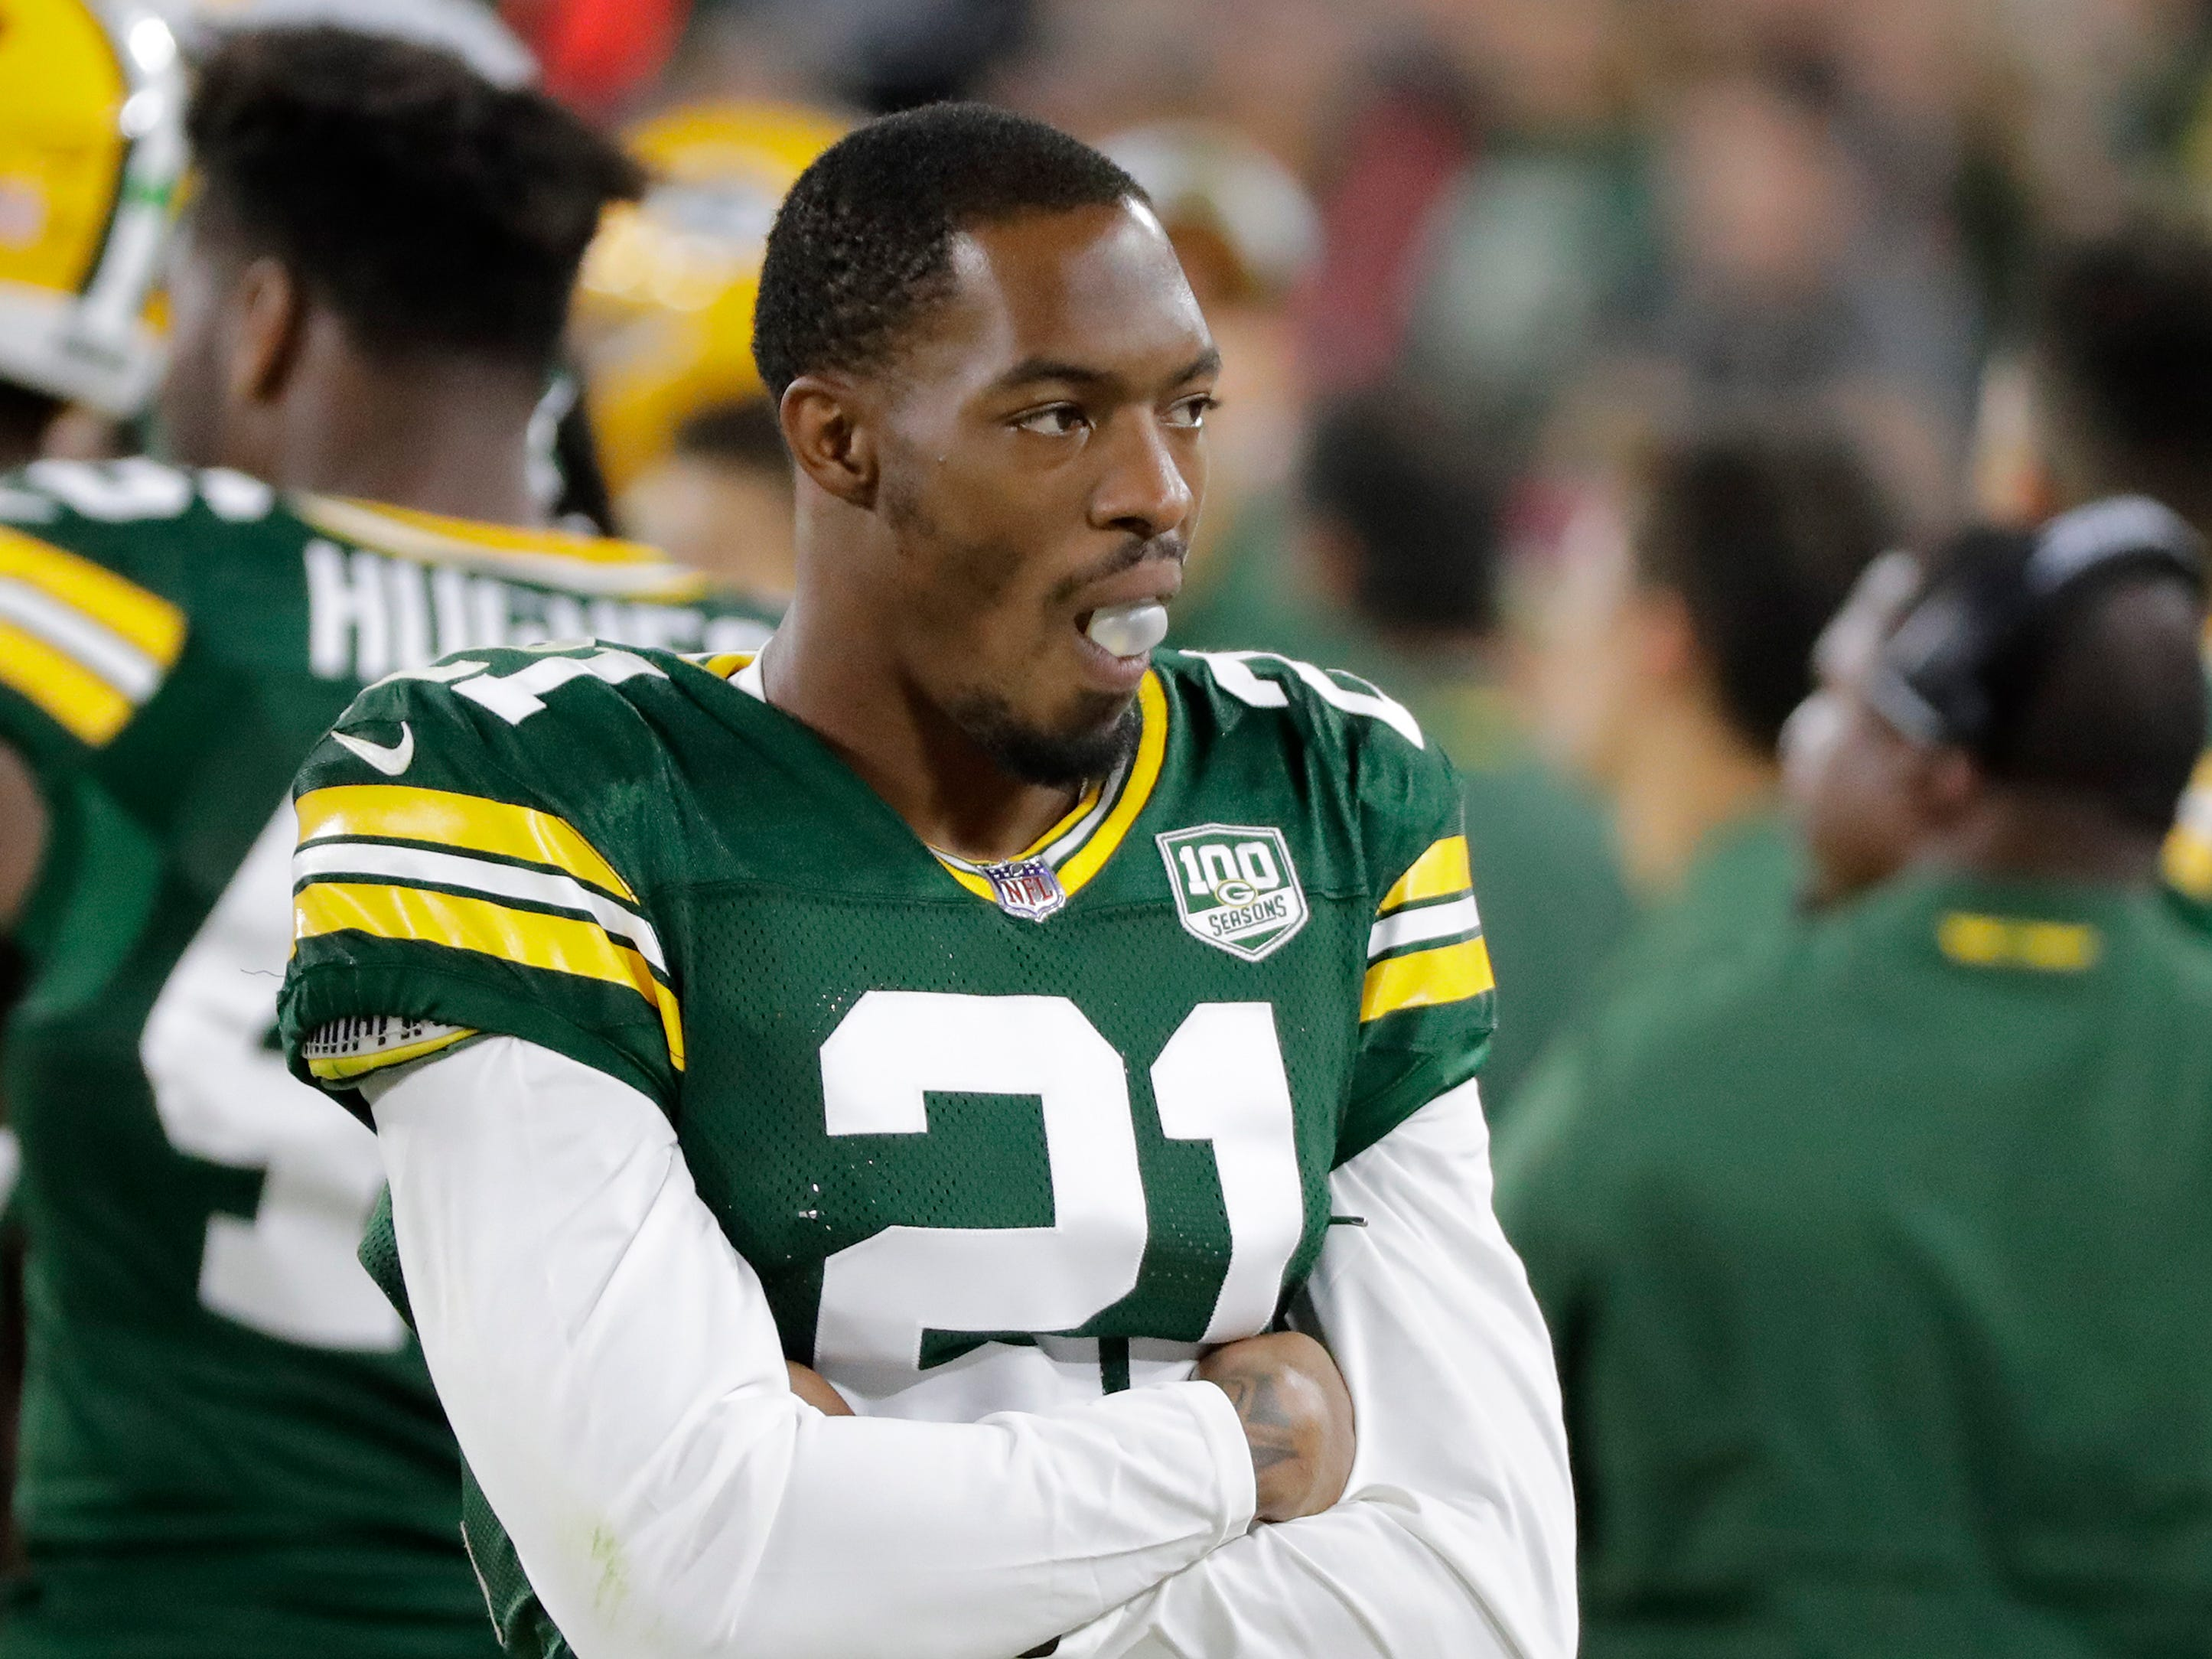 Green Bay Packers defensive back Ha Ha Clinton-Dix (21) chews gum on the sideline during an NFL preseason game at Lambeau Field on Thursday, August 9, 2018 in Green Bay, Wis.